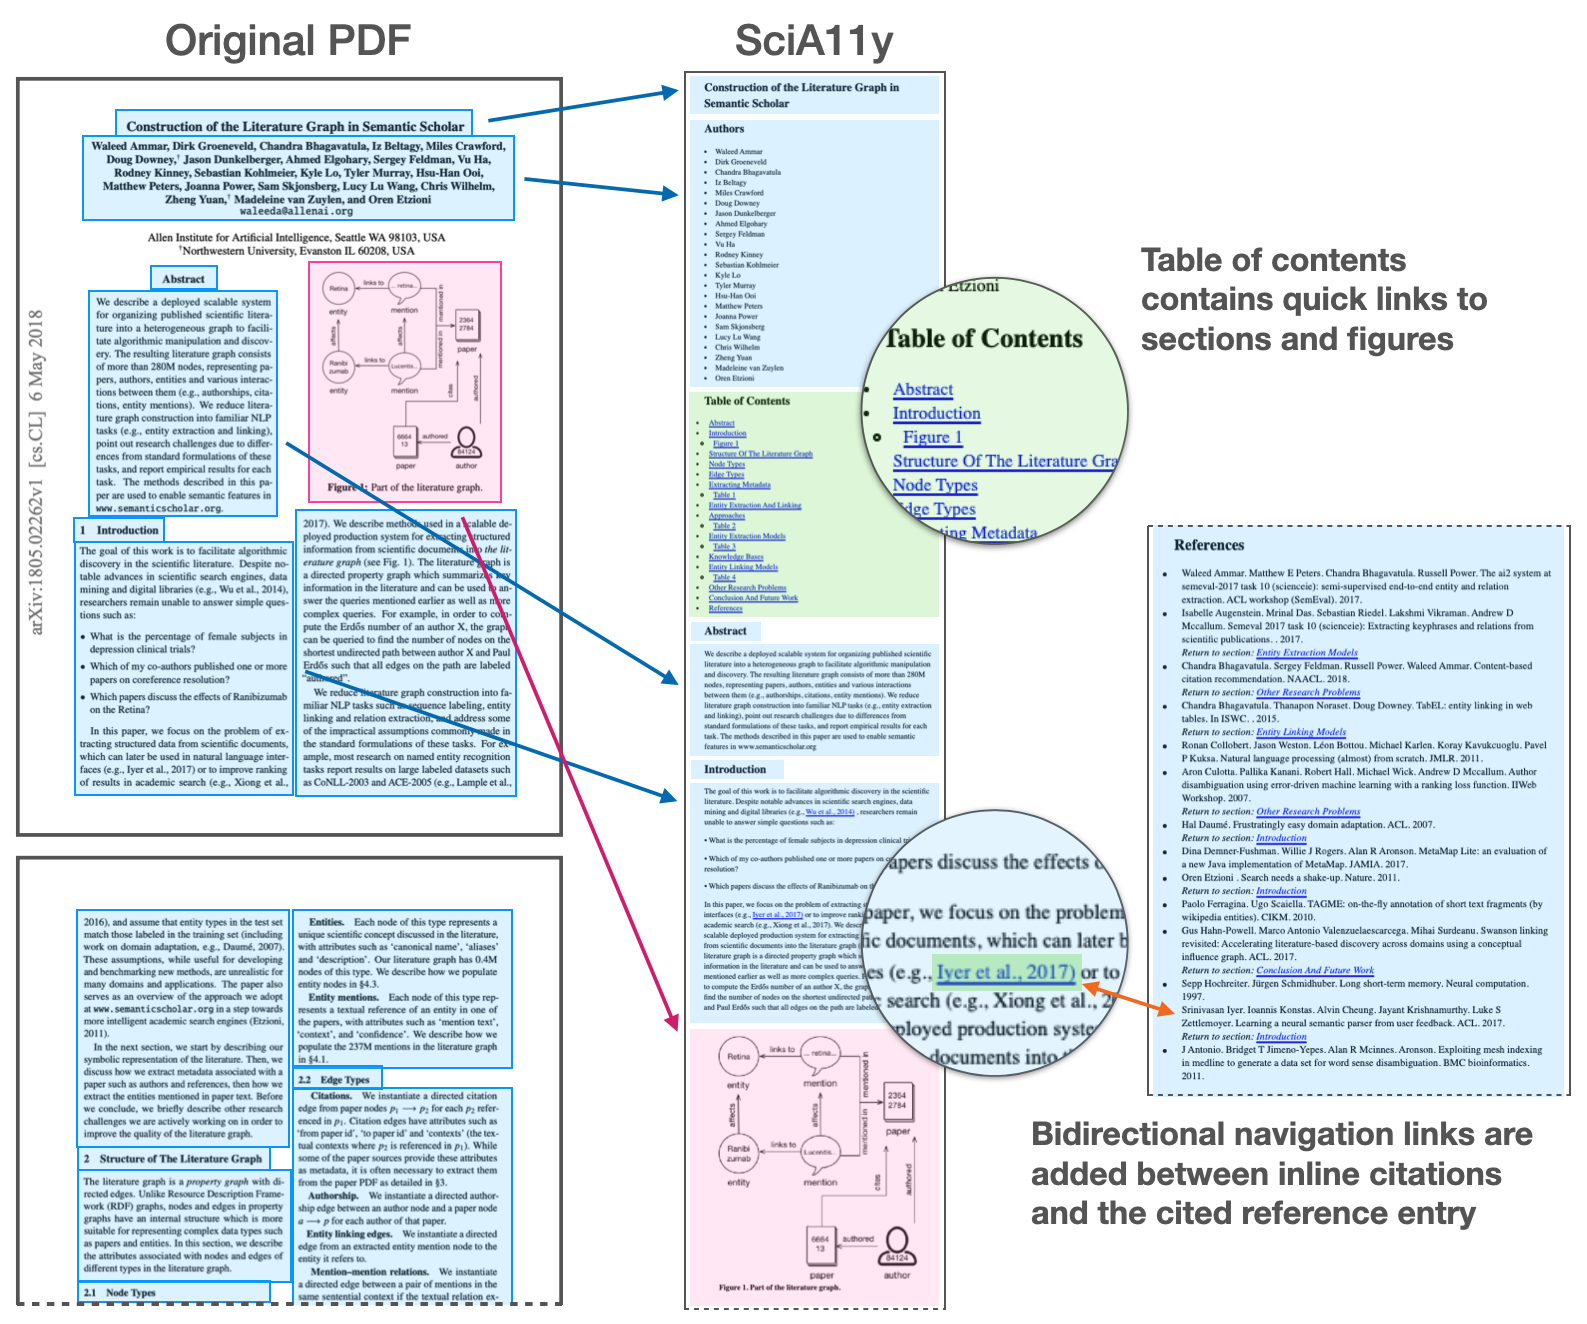 """On the left are the first page and half of a PDF for the paper """"Construction of the literature graph in Semantic Scholar."""" Textual elements are highlighted as blocks of blue. Figure elements are highlighted as blocks of pink. In the middle is the SciA11y HTML render of the same document, with arrows pointing to how blocks from the PDF are rearranged in the HTML. A table of contents is added near the beginning, highlighted in green. Links are added between inline citations and the bibliography."""